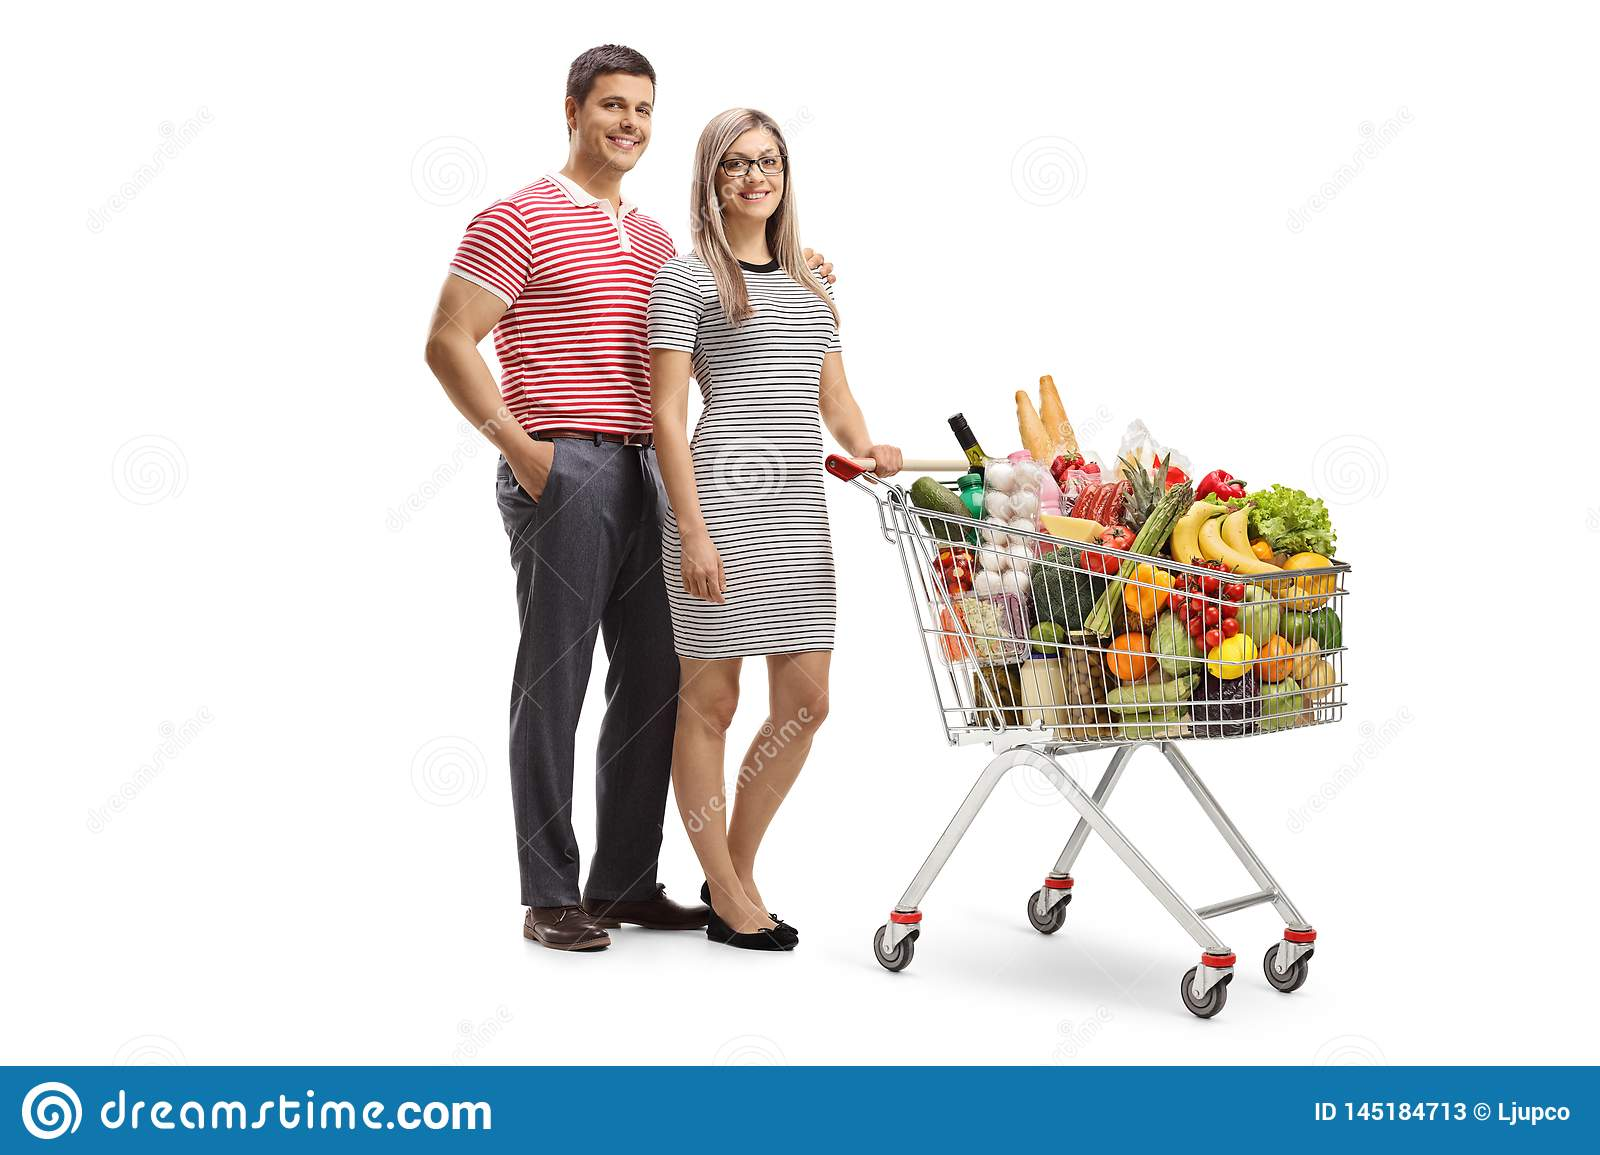 Young man and woman posing with a full shopping cart